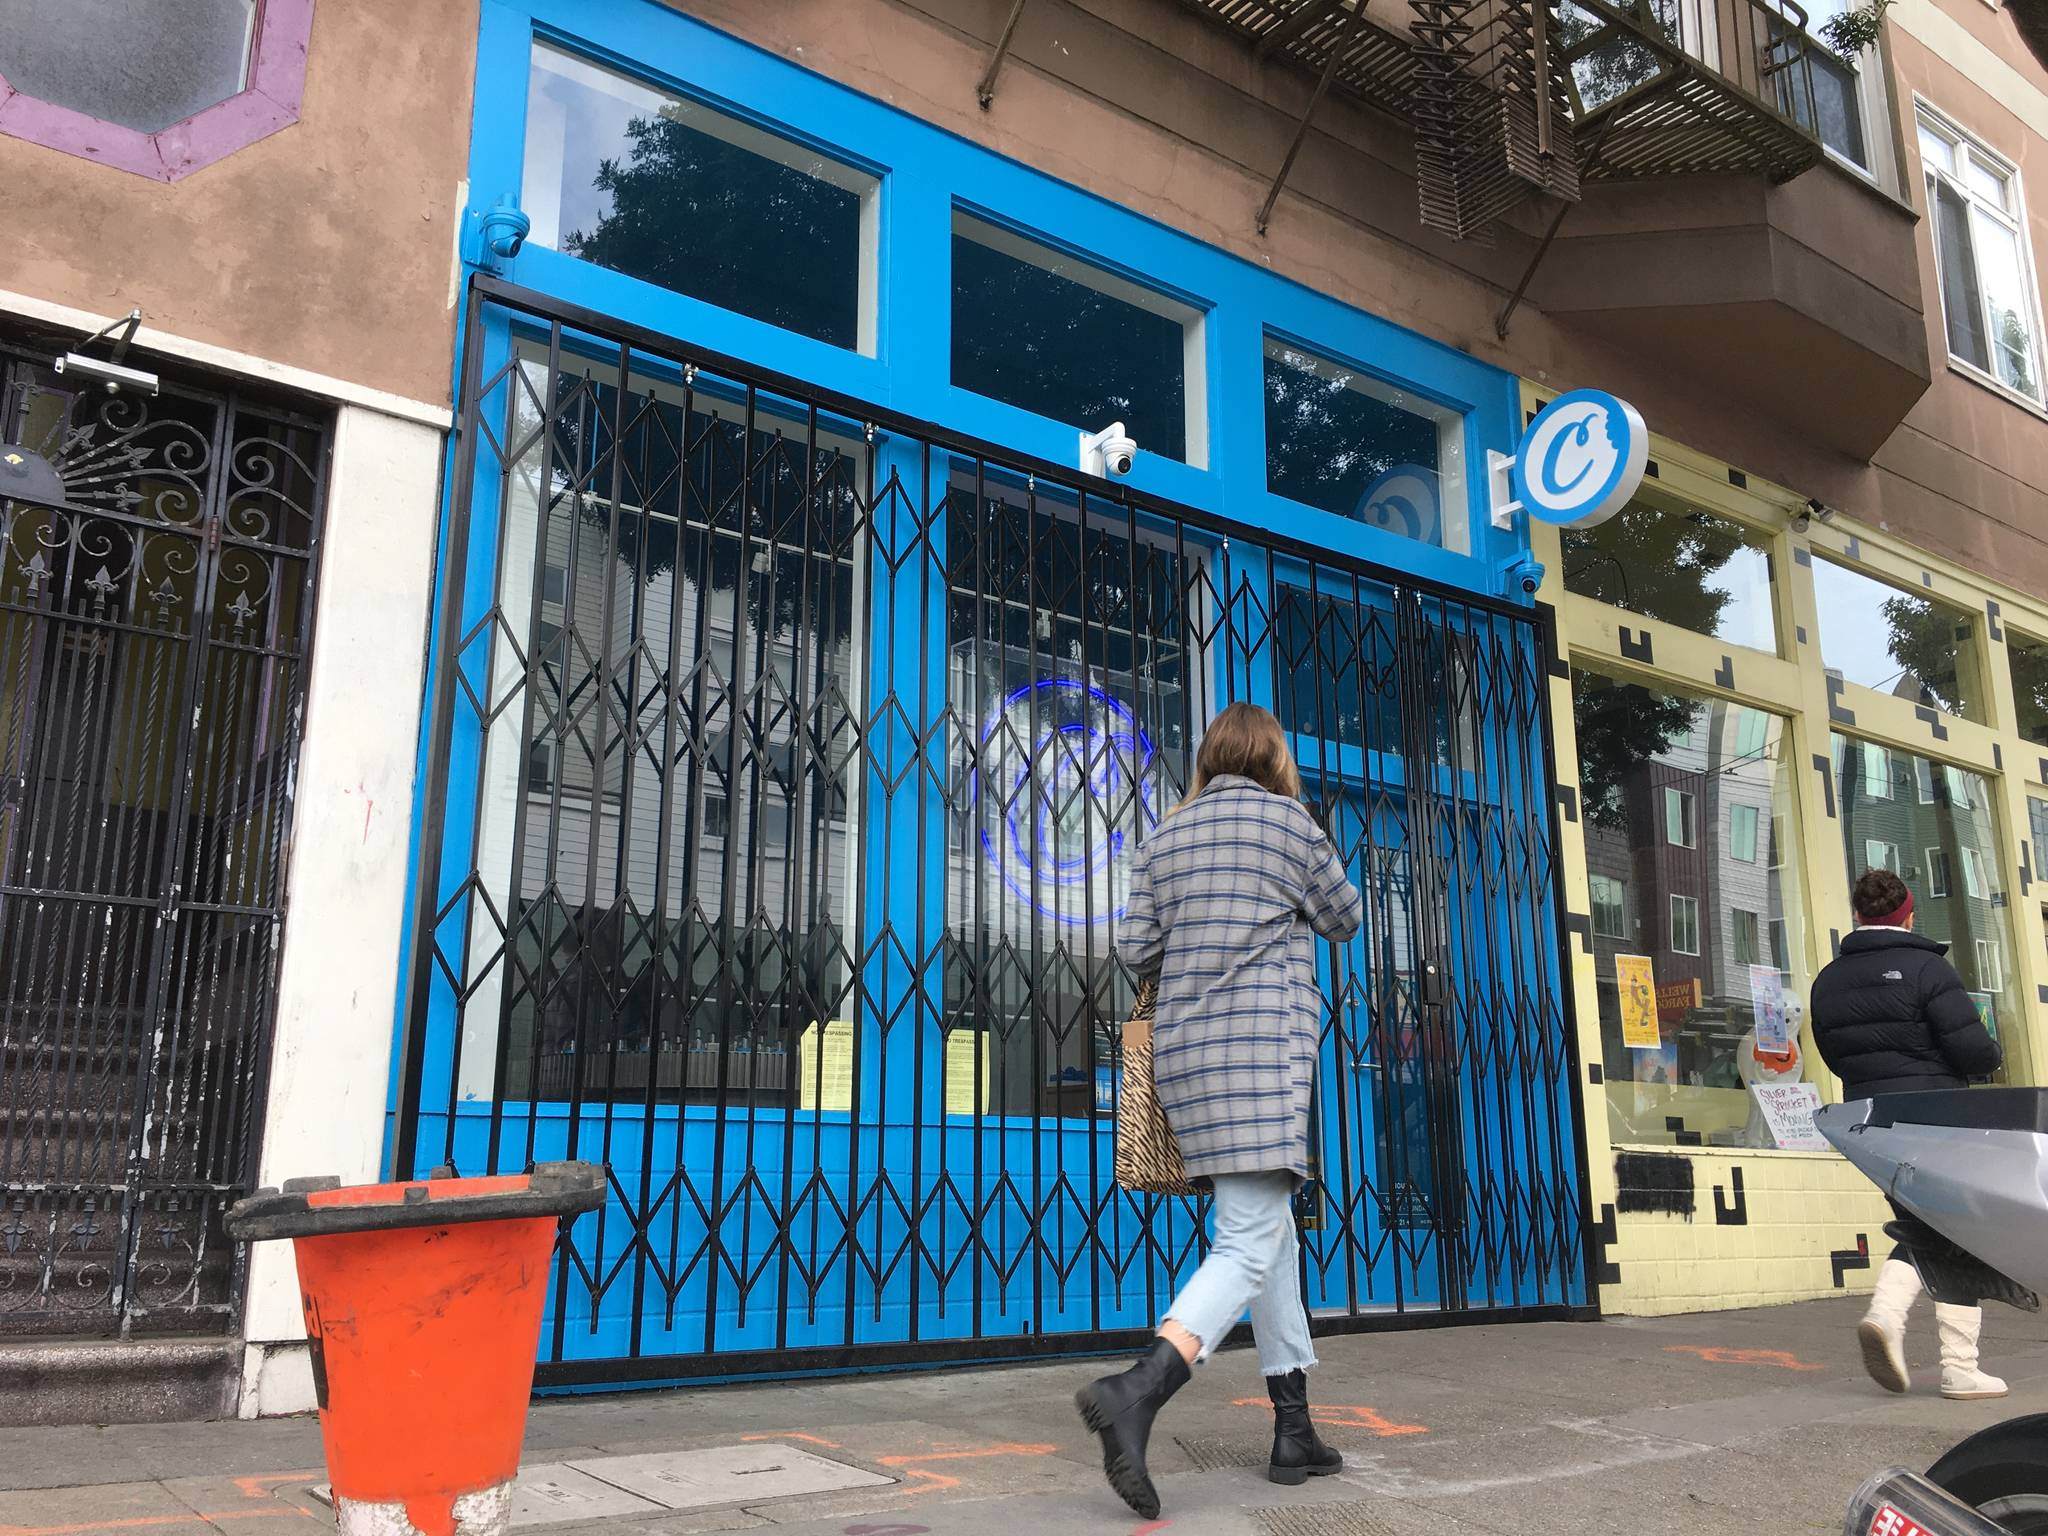 Many dispensaries around San Francisco were closed on Tuesday after initial shelter-in-place orders from The City that shut down most retailers. (Corey Browning/Special to the S.F. Examiner)